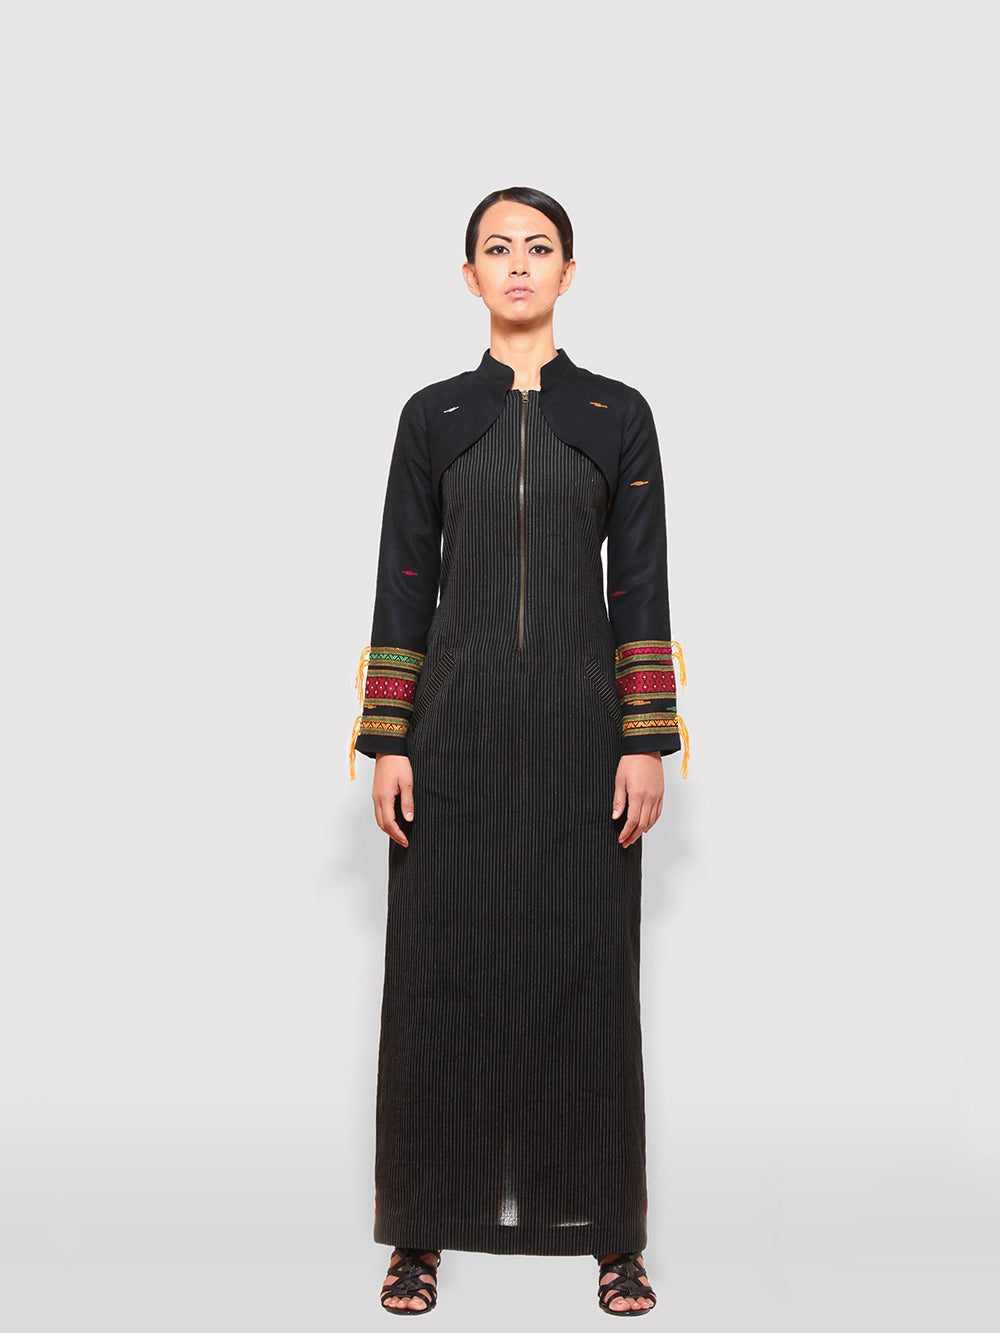 Handwoven traditional motif Long sleeves shrugs with Extra Weft designed by Khumanthem Atelier